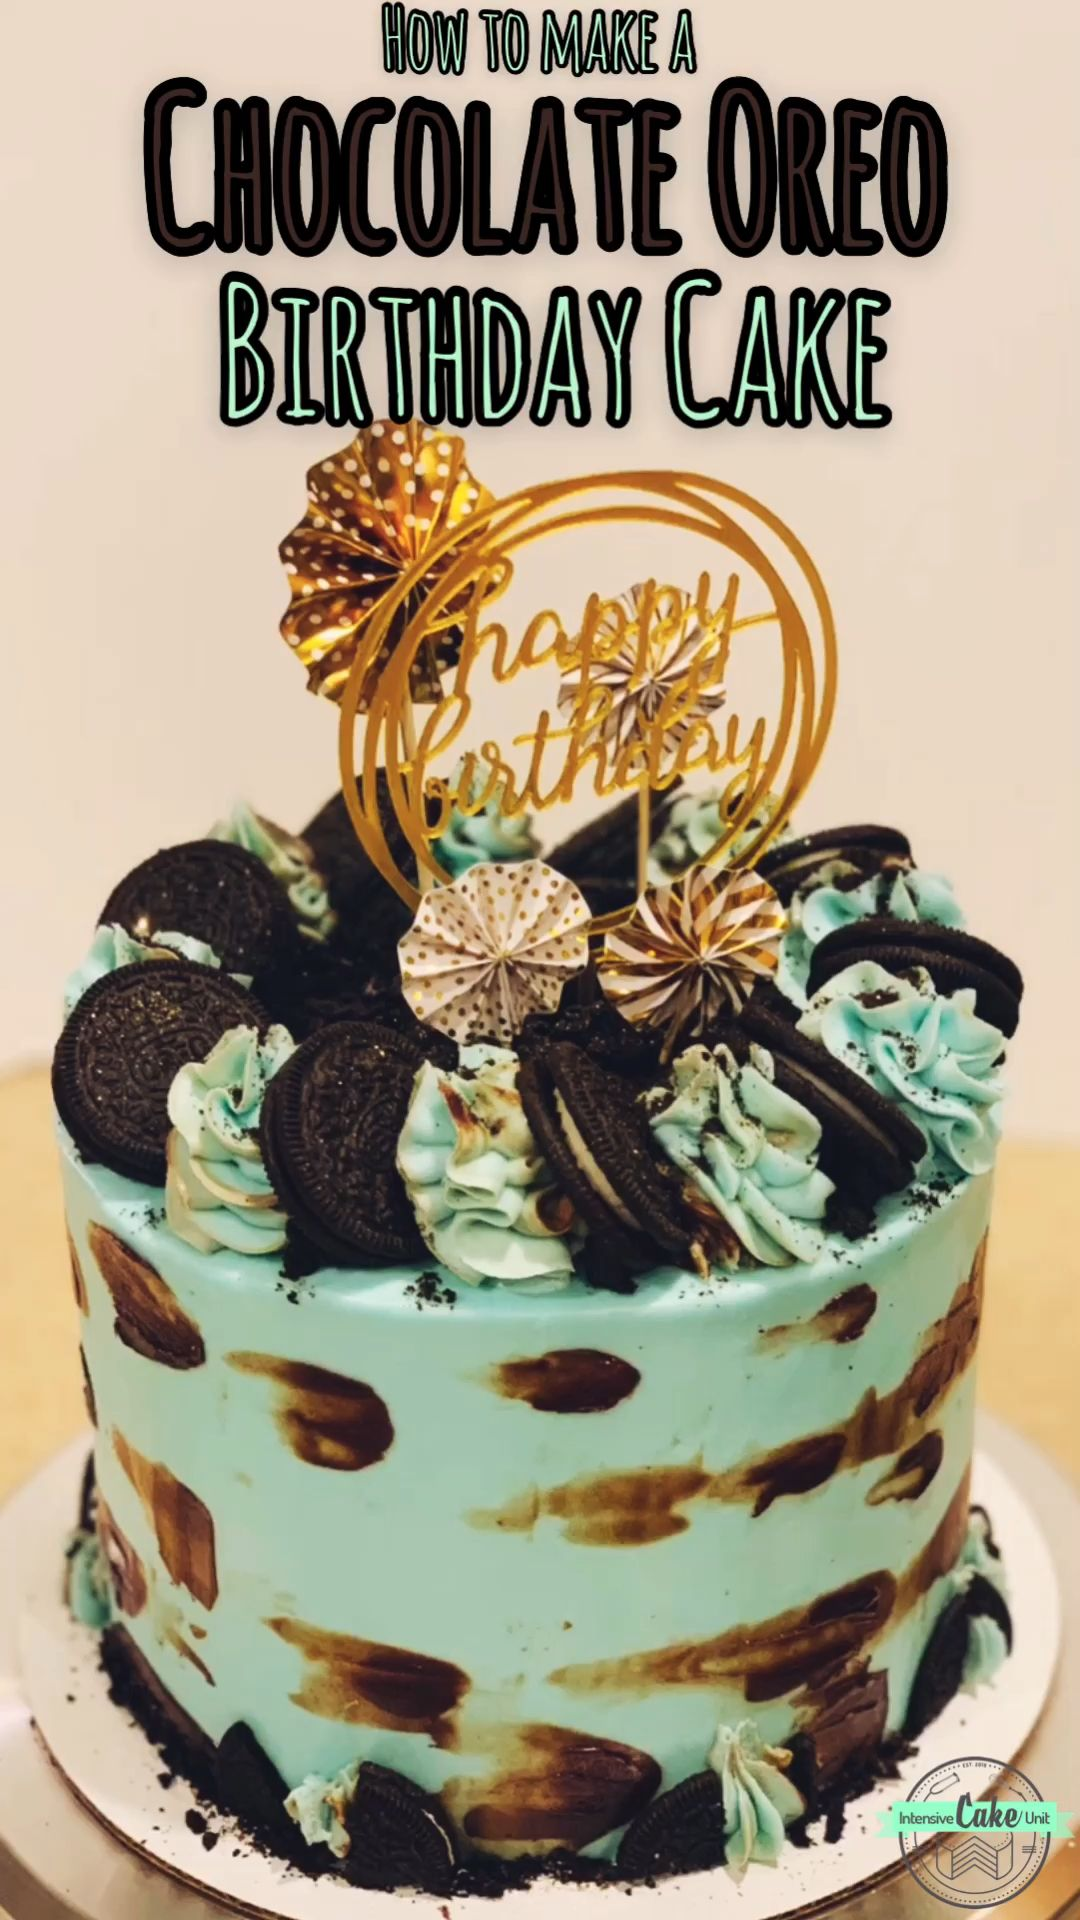 Chocolate Oreo Birthday Cake